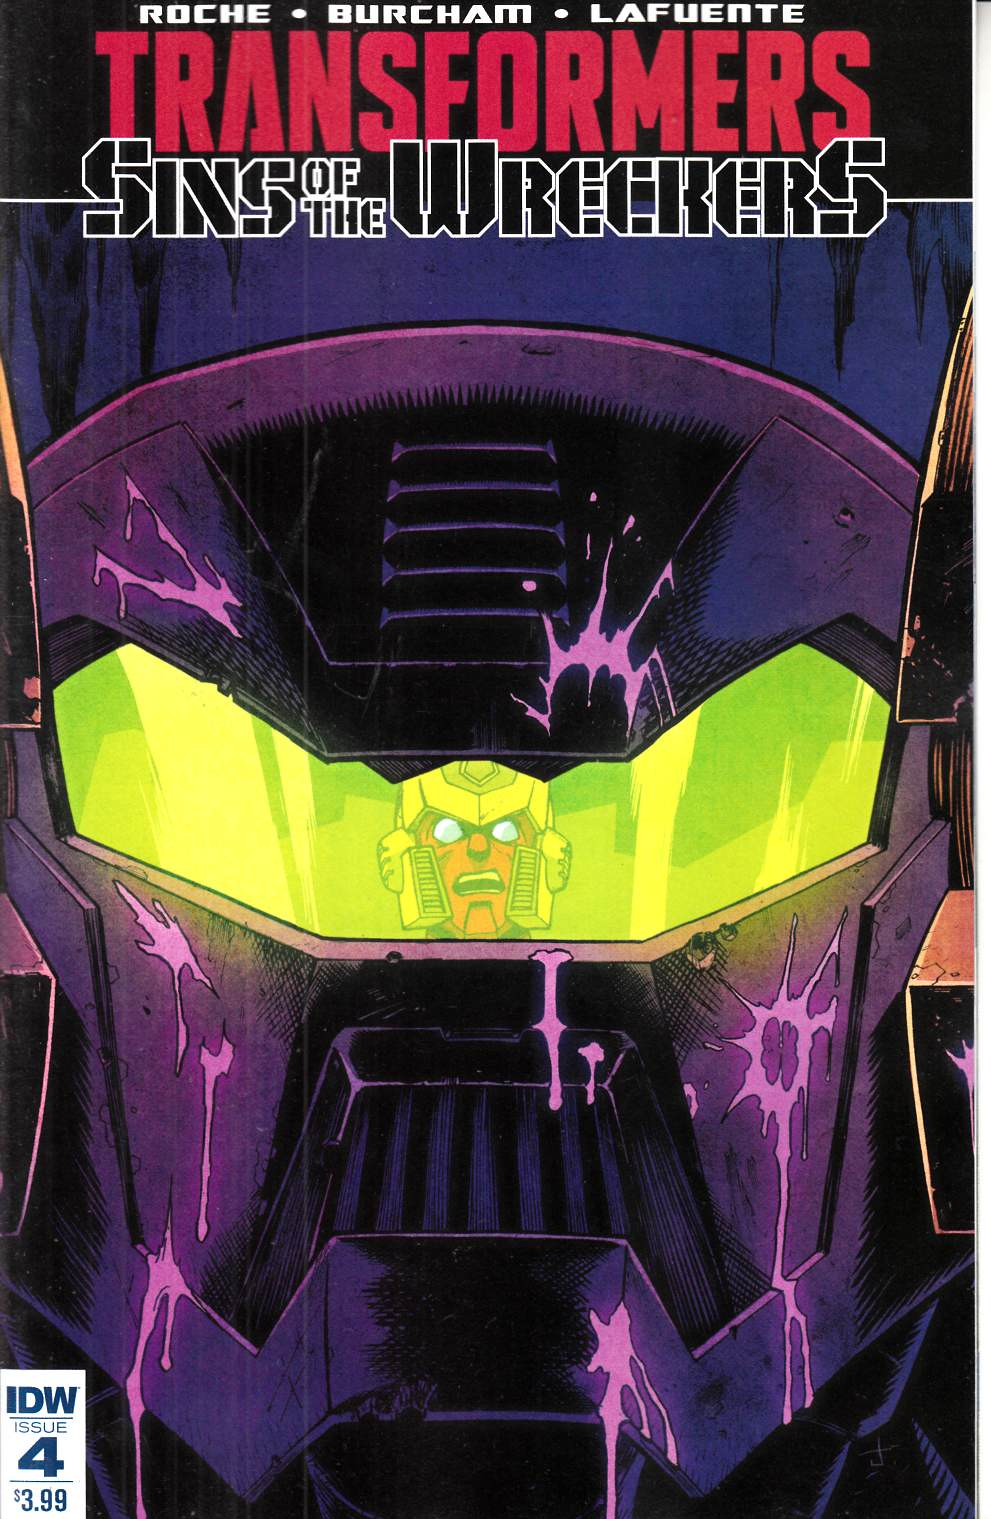 Transformers Sins of Wreckers #4 [IDW Comic] THUMBNAIL